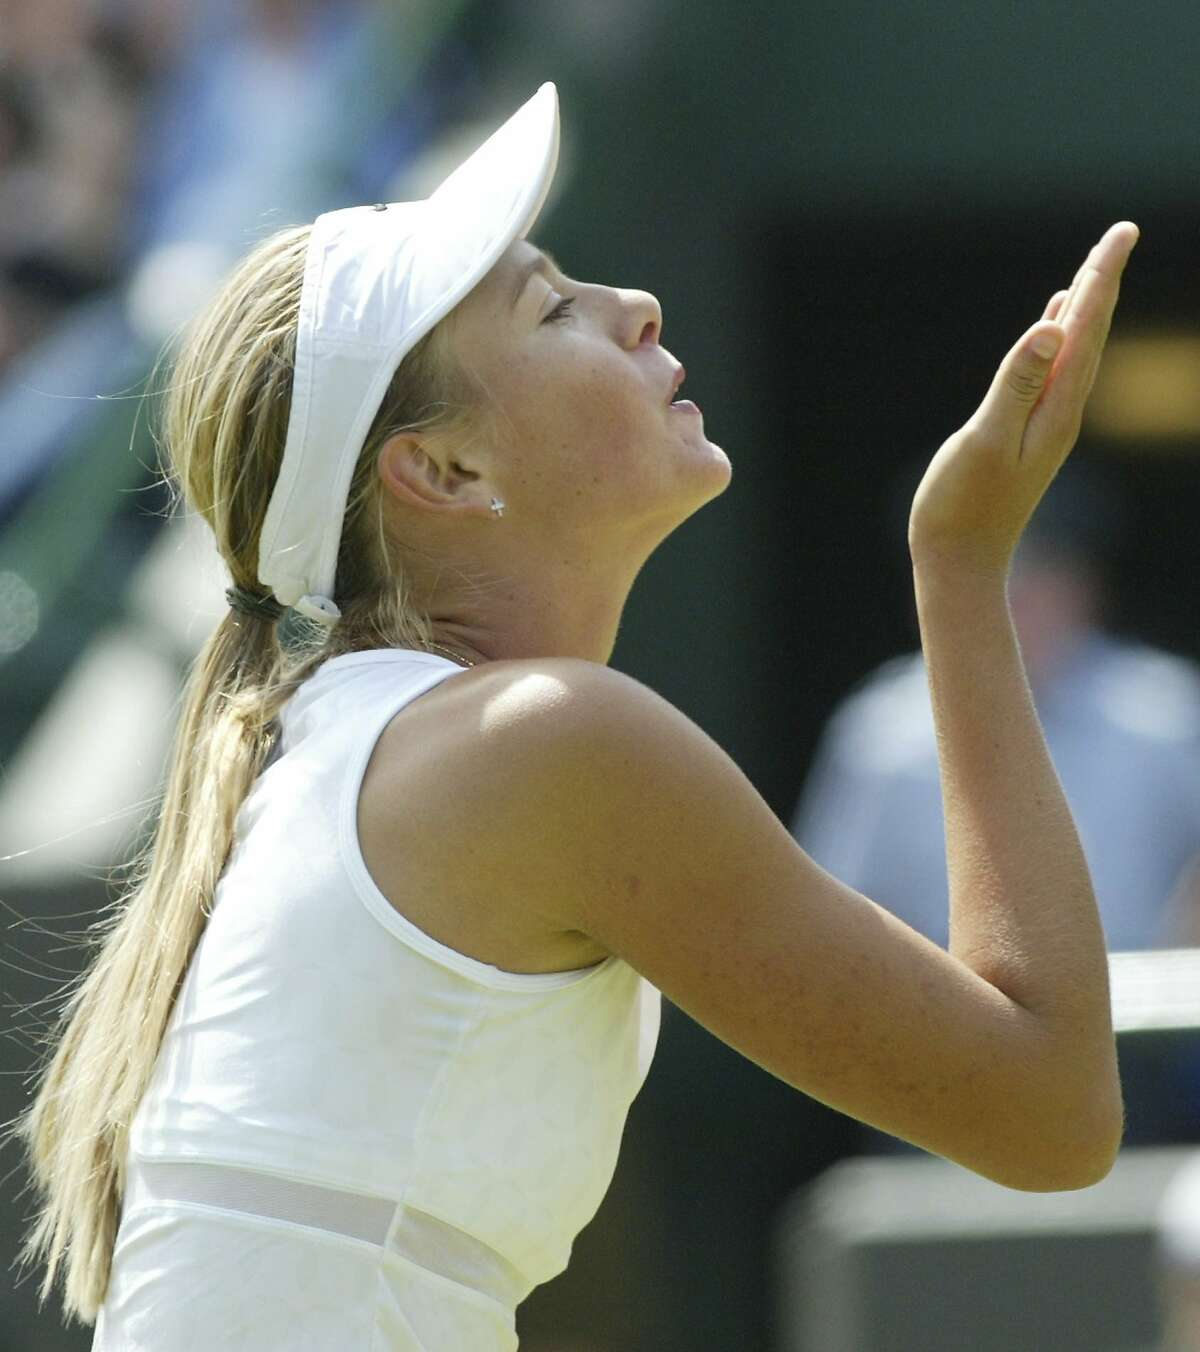 FILE - In this June 28, 2003, file photo, Russia's Maria Sharapova blows a kiss to the crowd after deafeating Yugoslavia's Jelena Dokic, in their Women's Singles third round match at Wimbledon. Sharapova walked away from her sport rather quietly Wednesday, Feb. 26, 2020, at the age of 32, ending a career that featured five major championships, time at No. 1 in the WTA rankings, a 15-month doping ban and plenty of problems with her right shoulder.(AP Photo/Dave Caulkin, File)